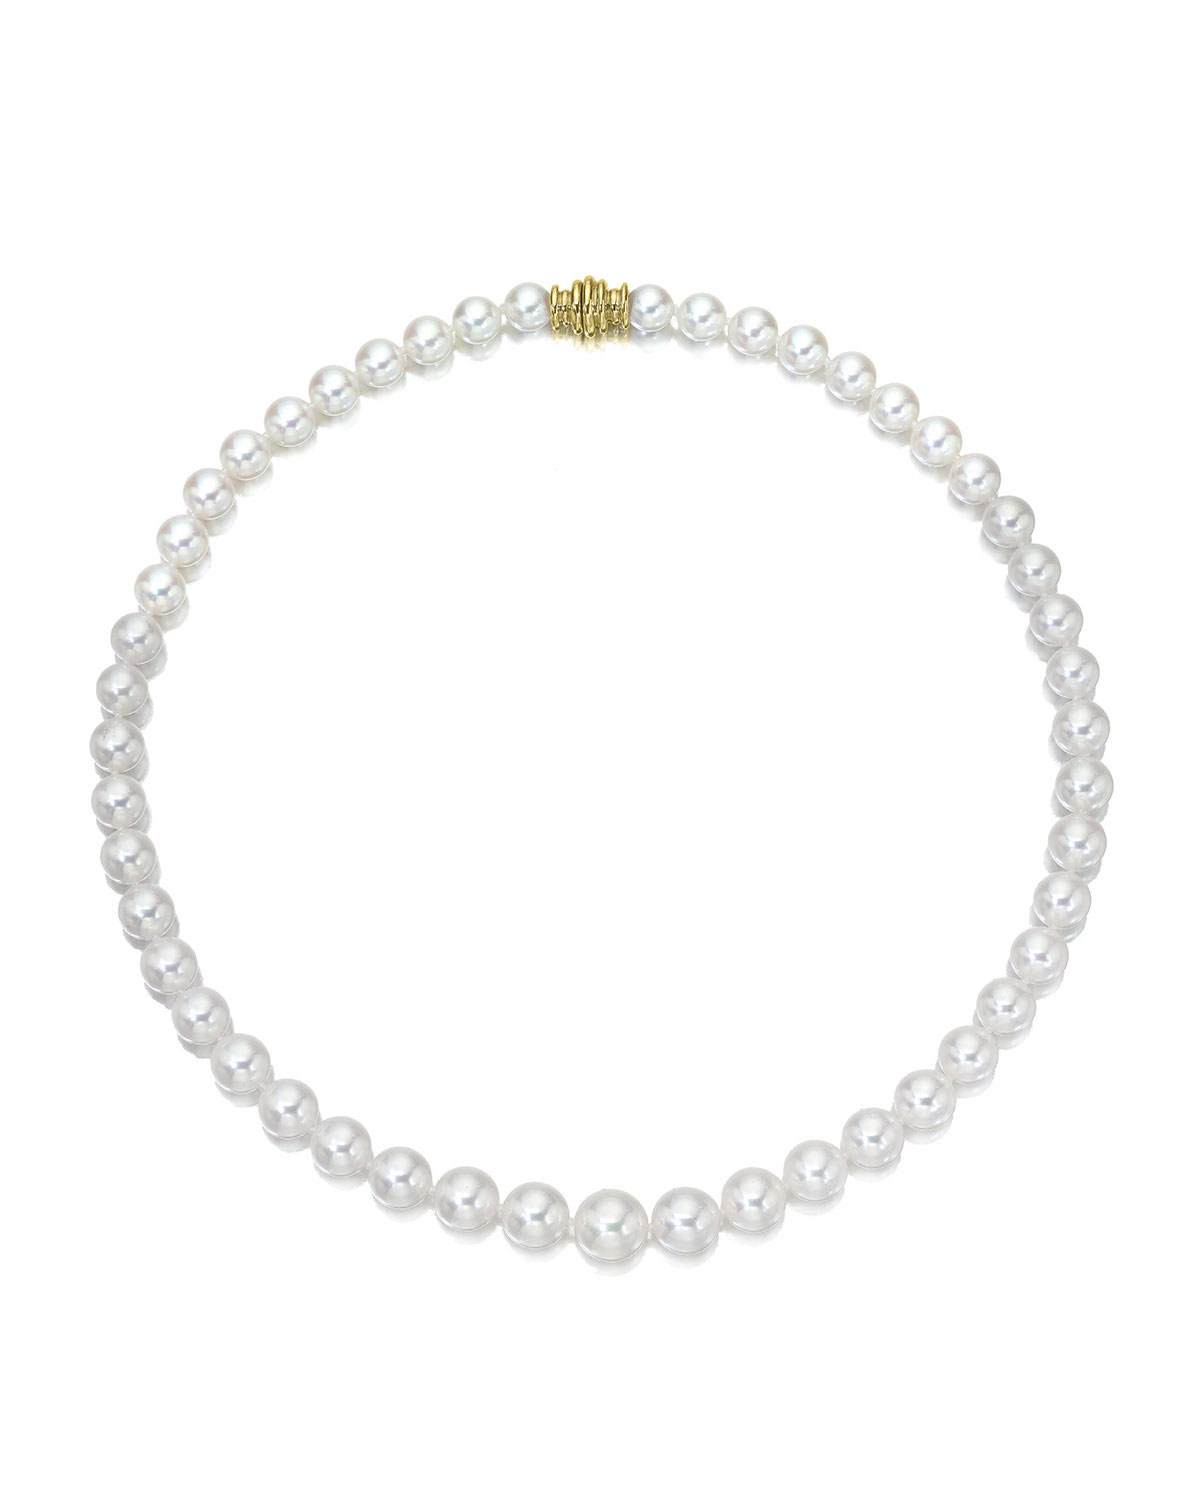 Short Akoya 6.5mm Pearl-Strand Necklace w/ 18k White Gold, 16-inch